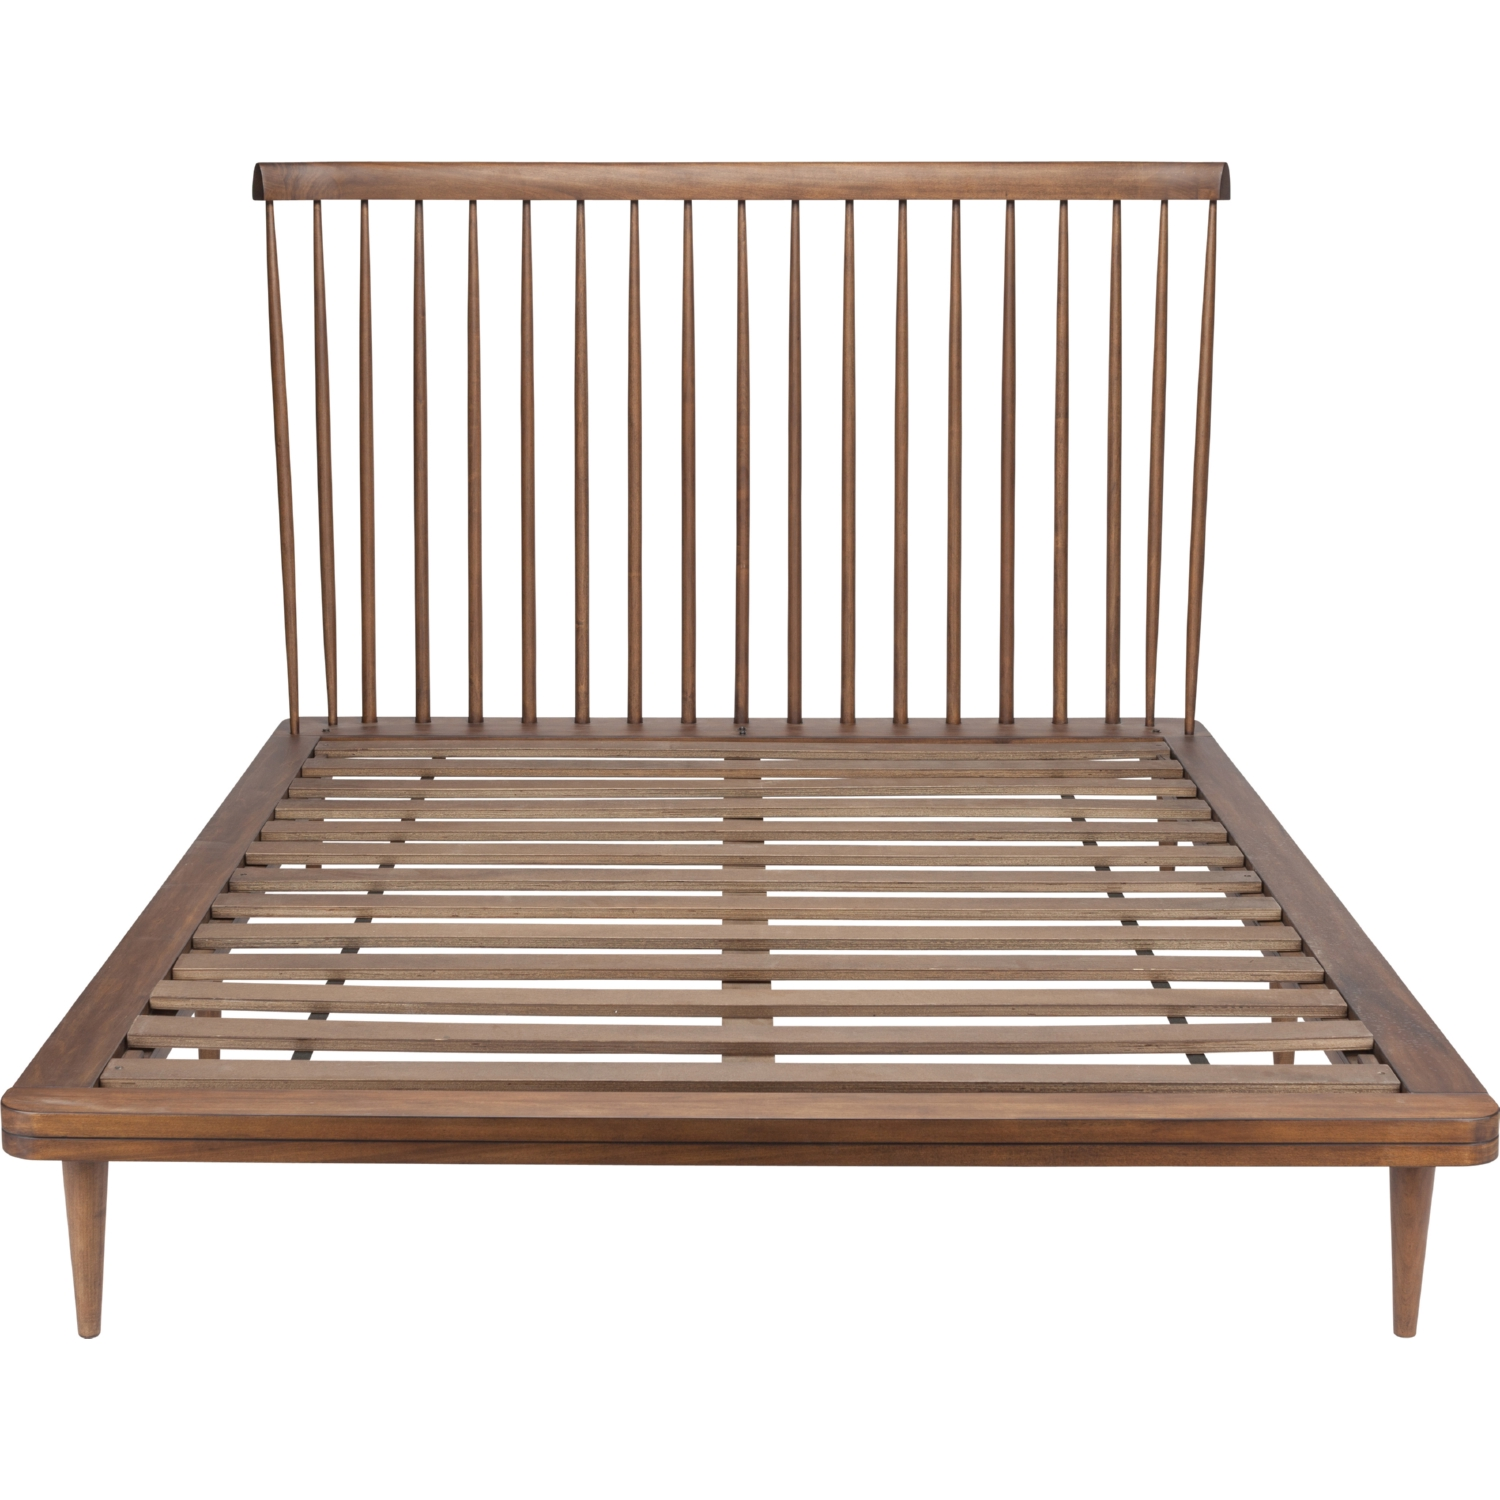 Nuevo Hgst107 Jessika Queen Bed In Walnut Stain W Spindle Headboard